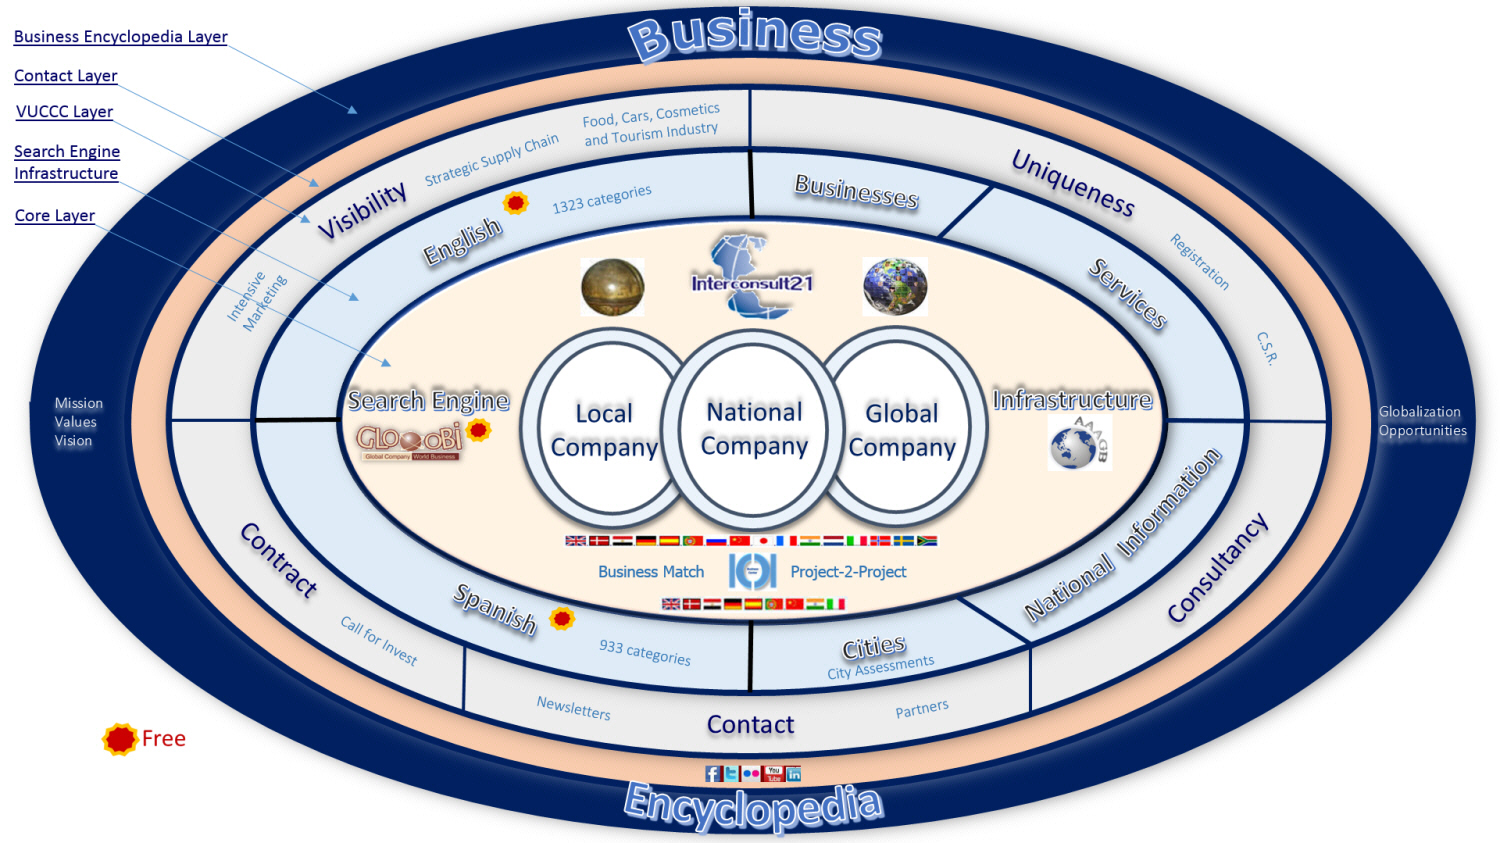 InterConsult21's integrated functions at several layers for local, national and global Companies in 239 Countries.